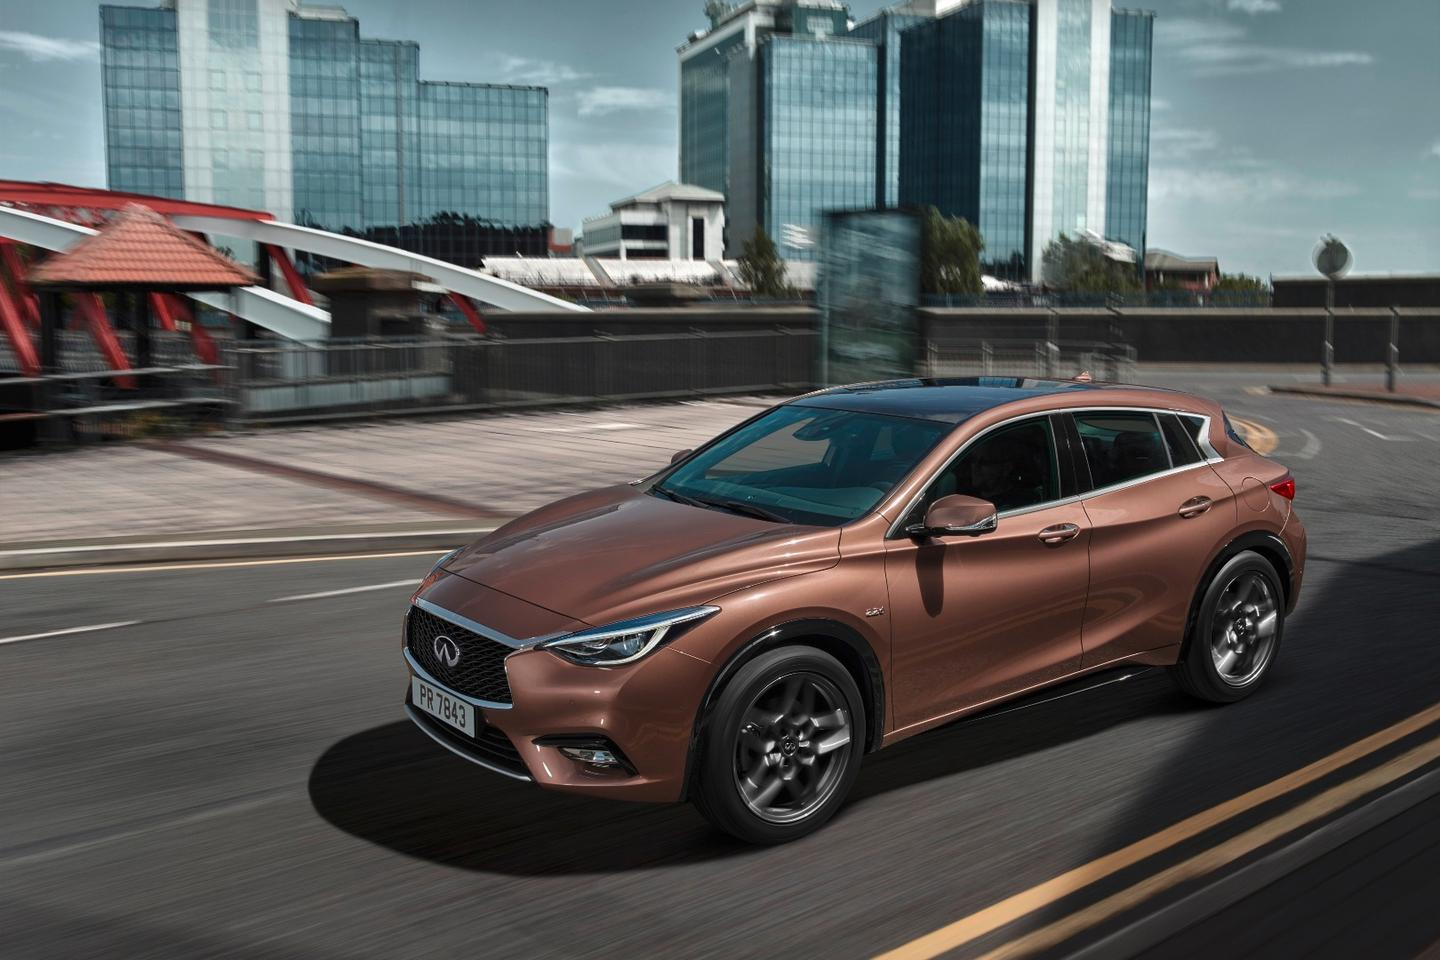 """Infiniti describes the Q30 active compact as """"a new type of premium vehicle for a new type of consumer"""""""